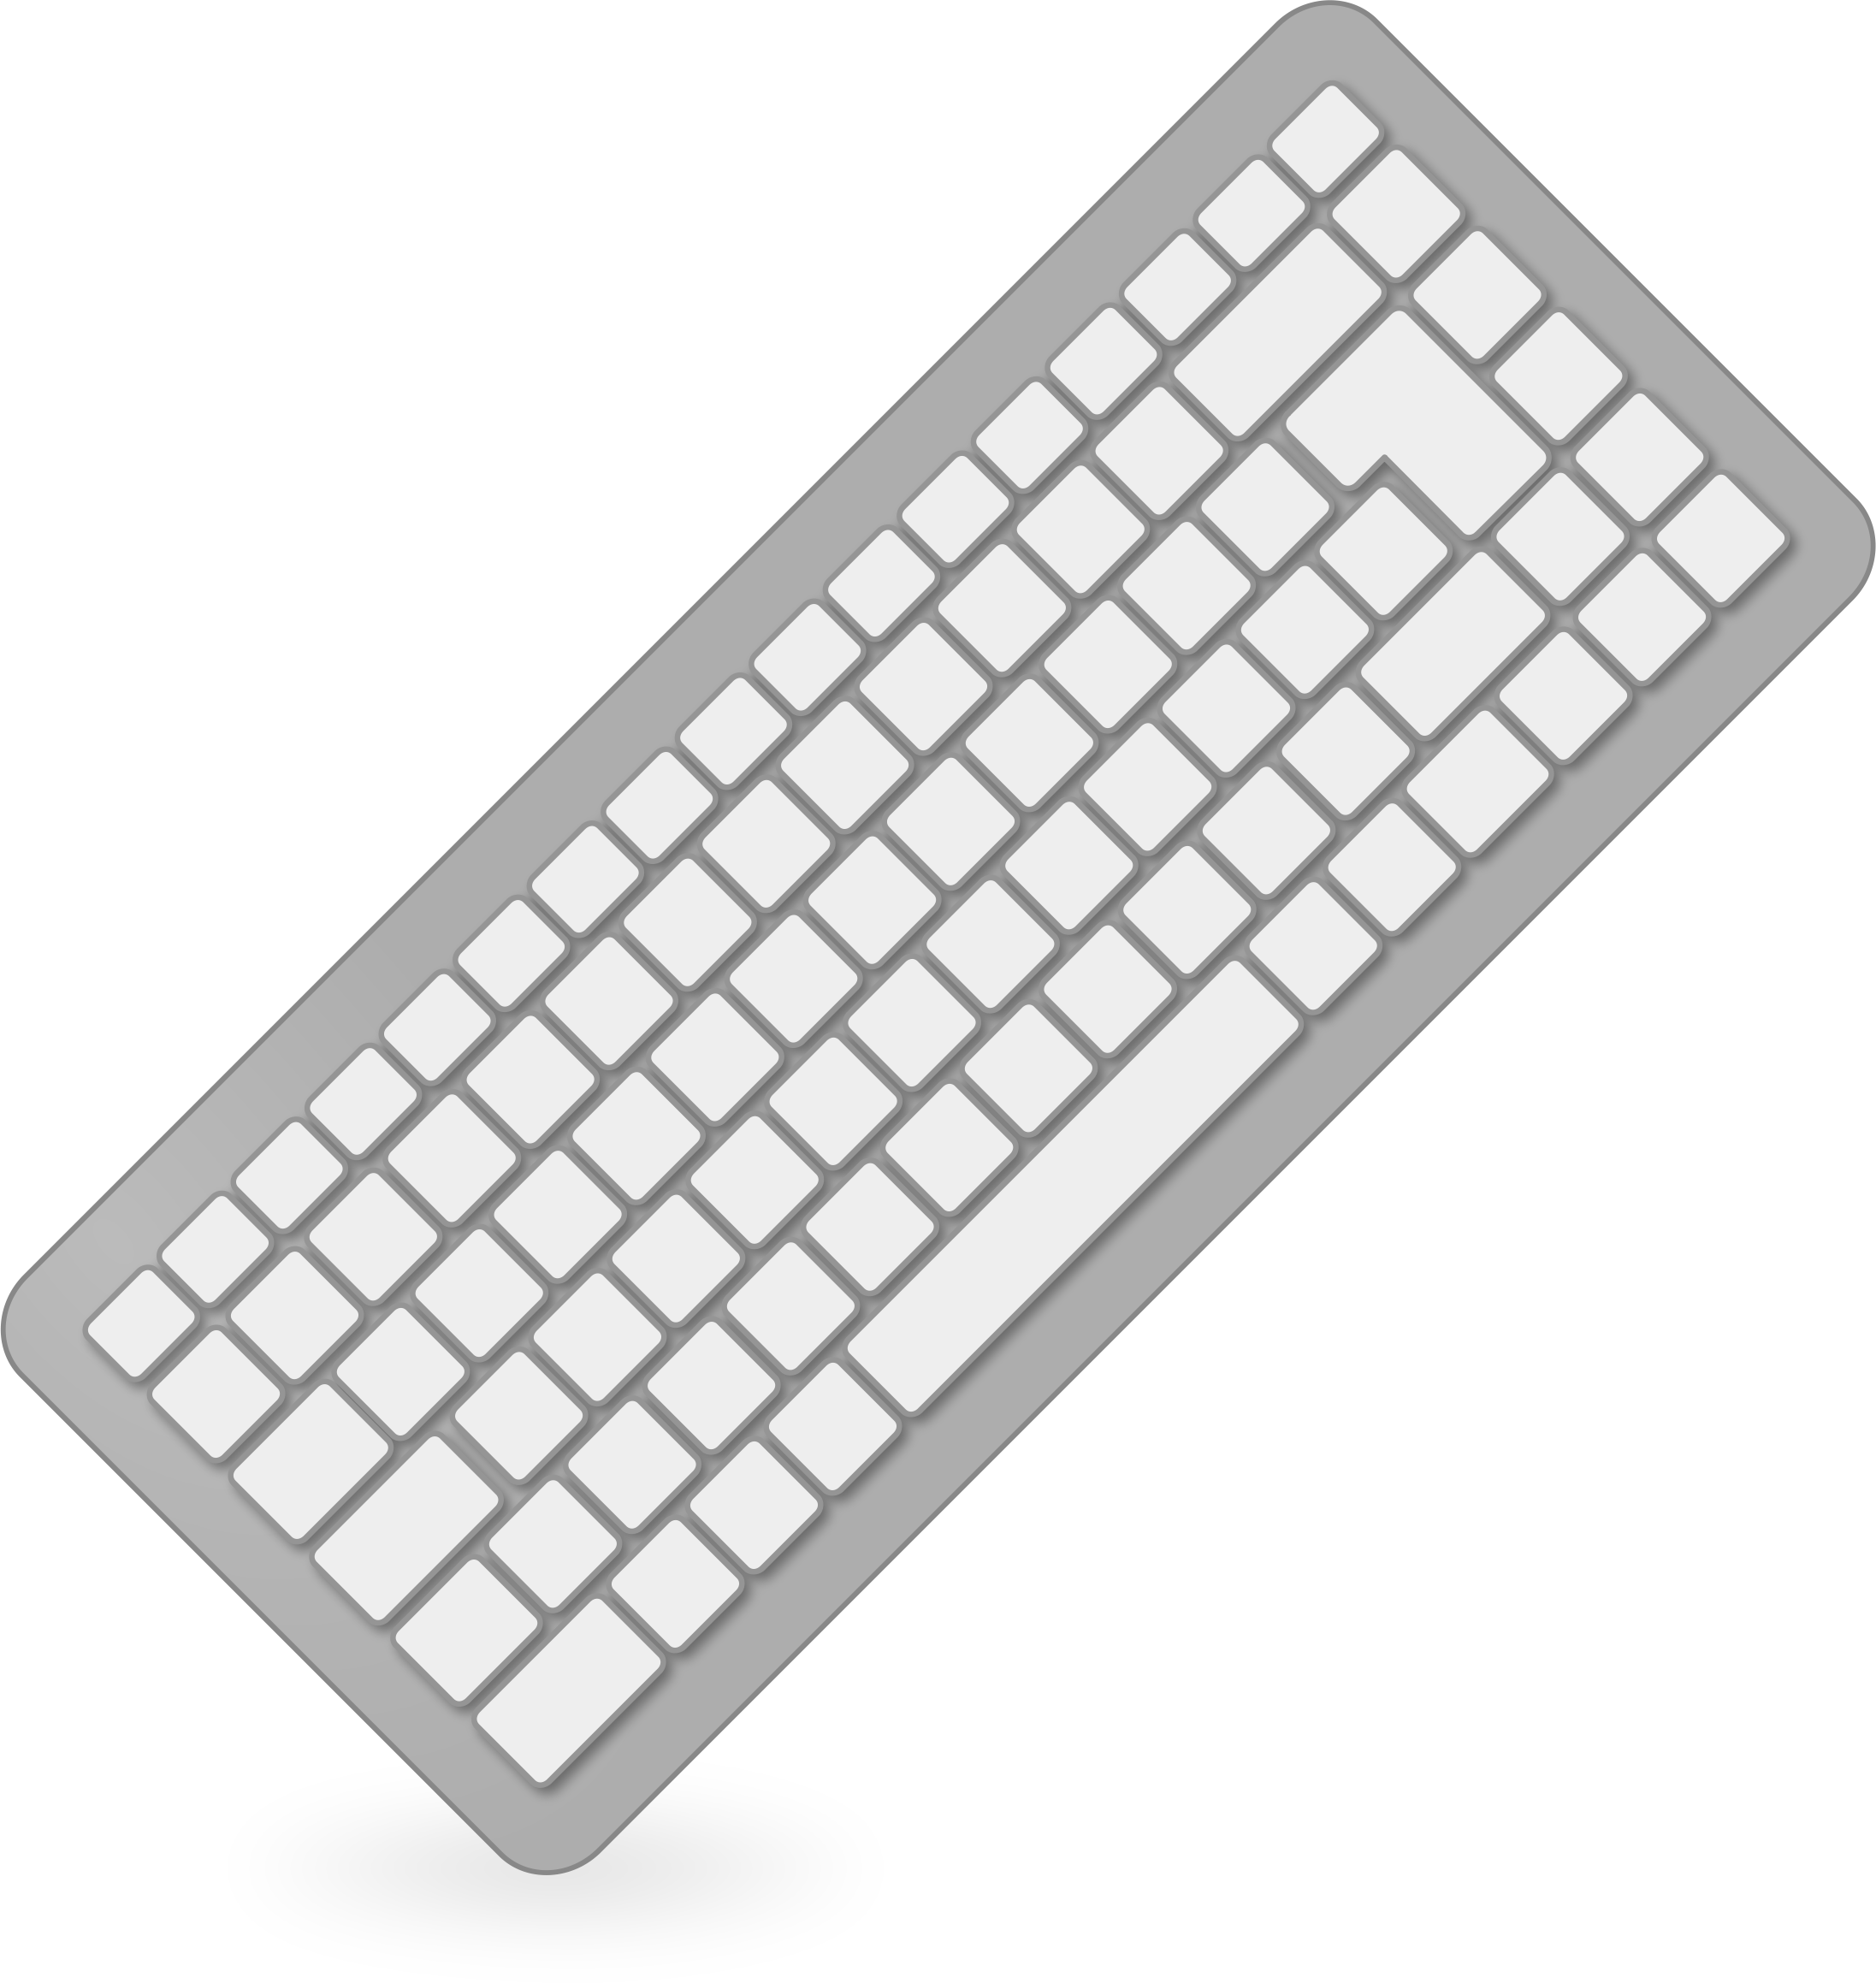 Cartoon computer keyboard clipart image royalty free download Computer Keyboard Black And White Clipart Clip art of Keyboard ... image royalty free download